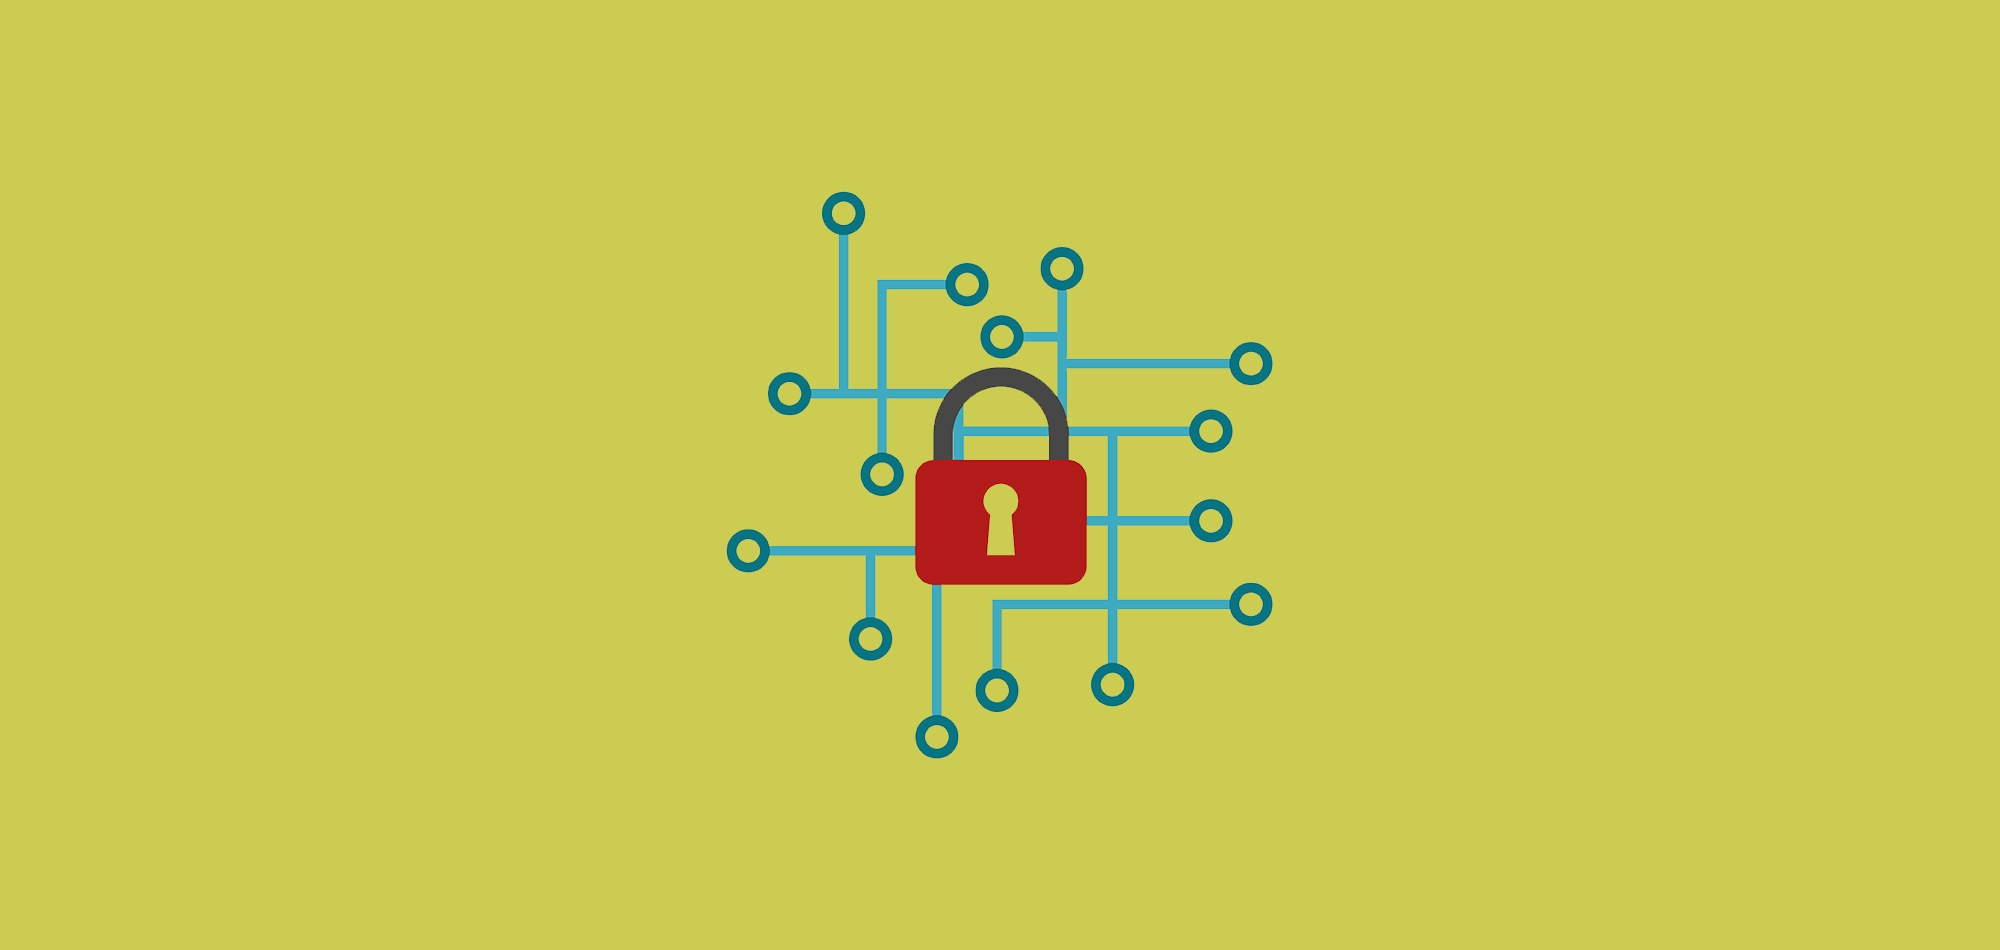 IoT Security: 4 Helpful Tips to Secure My Wireless Network